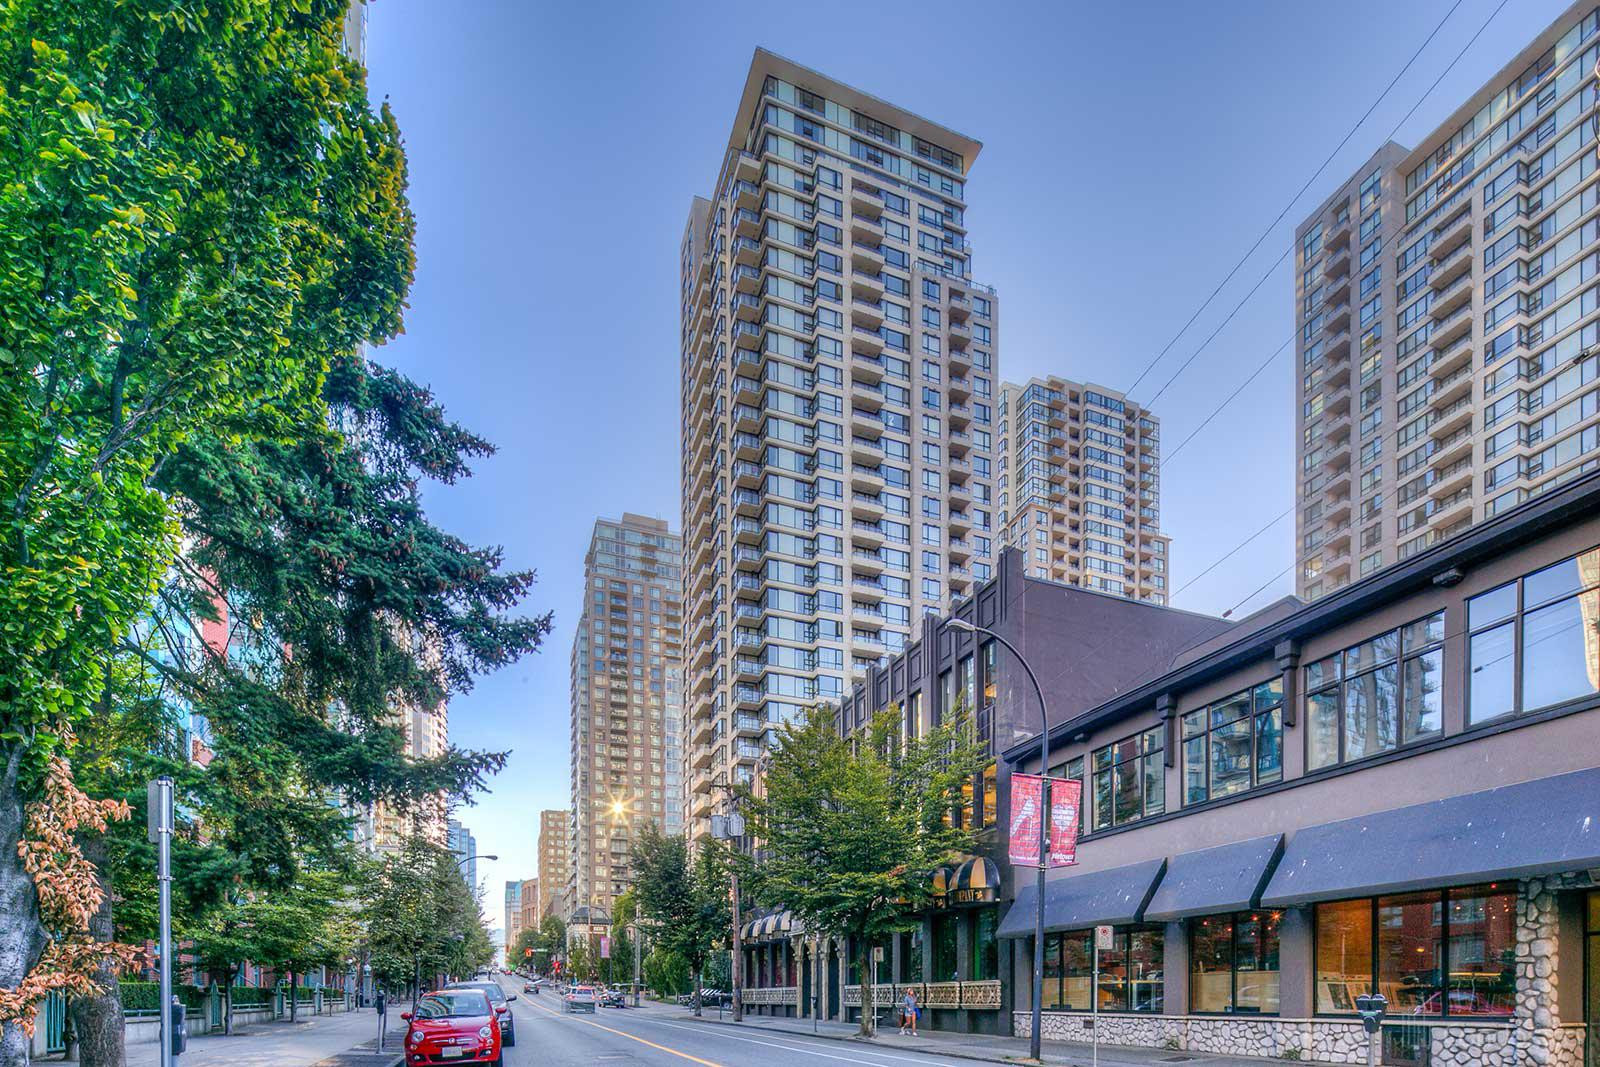 Yaletown Park 1 at 928 Homer St, Vancouver 0